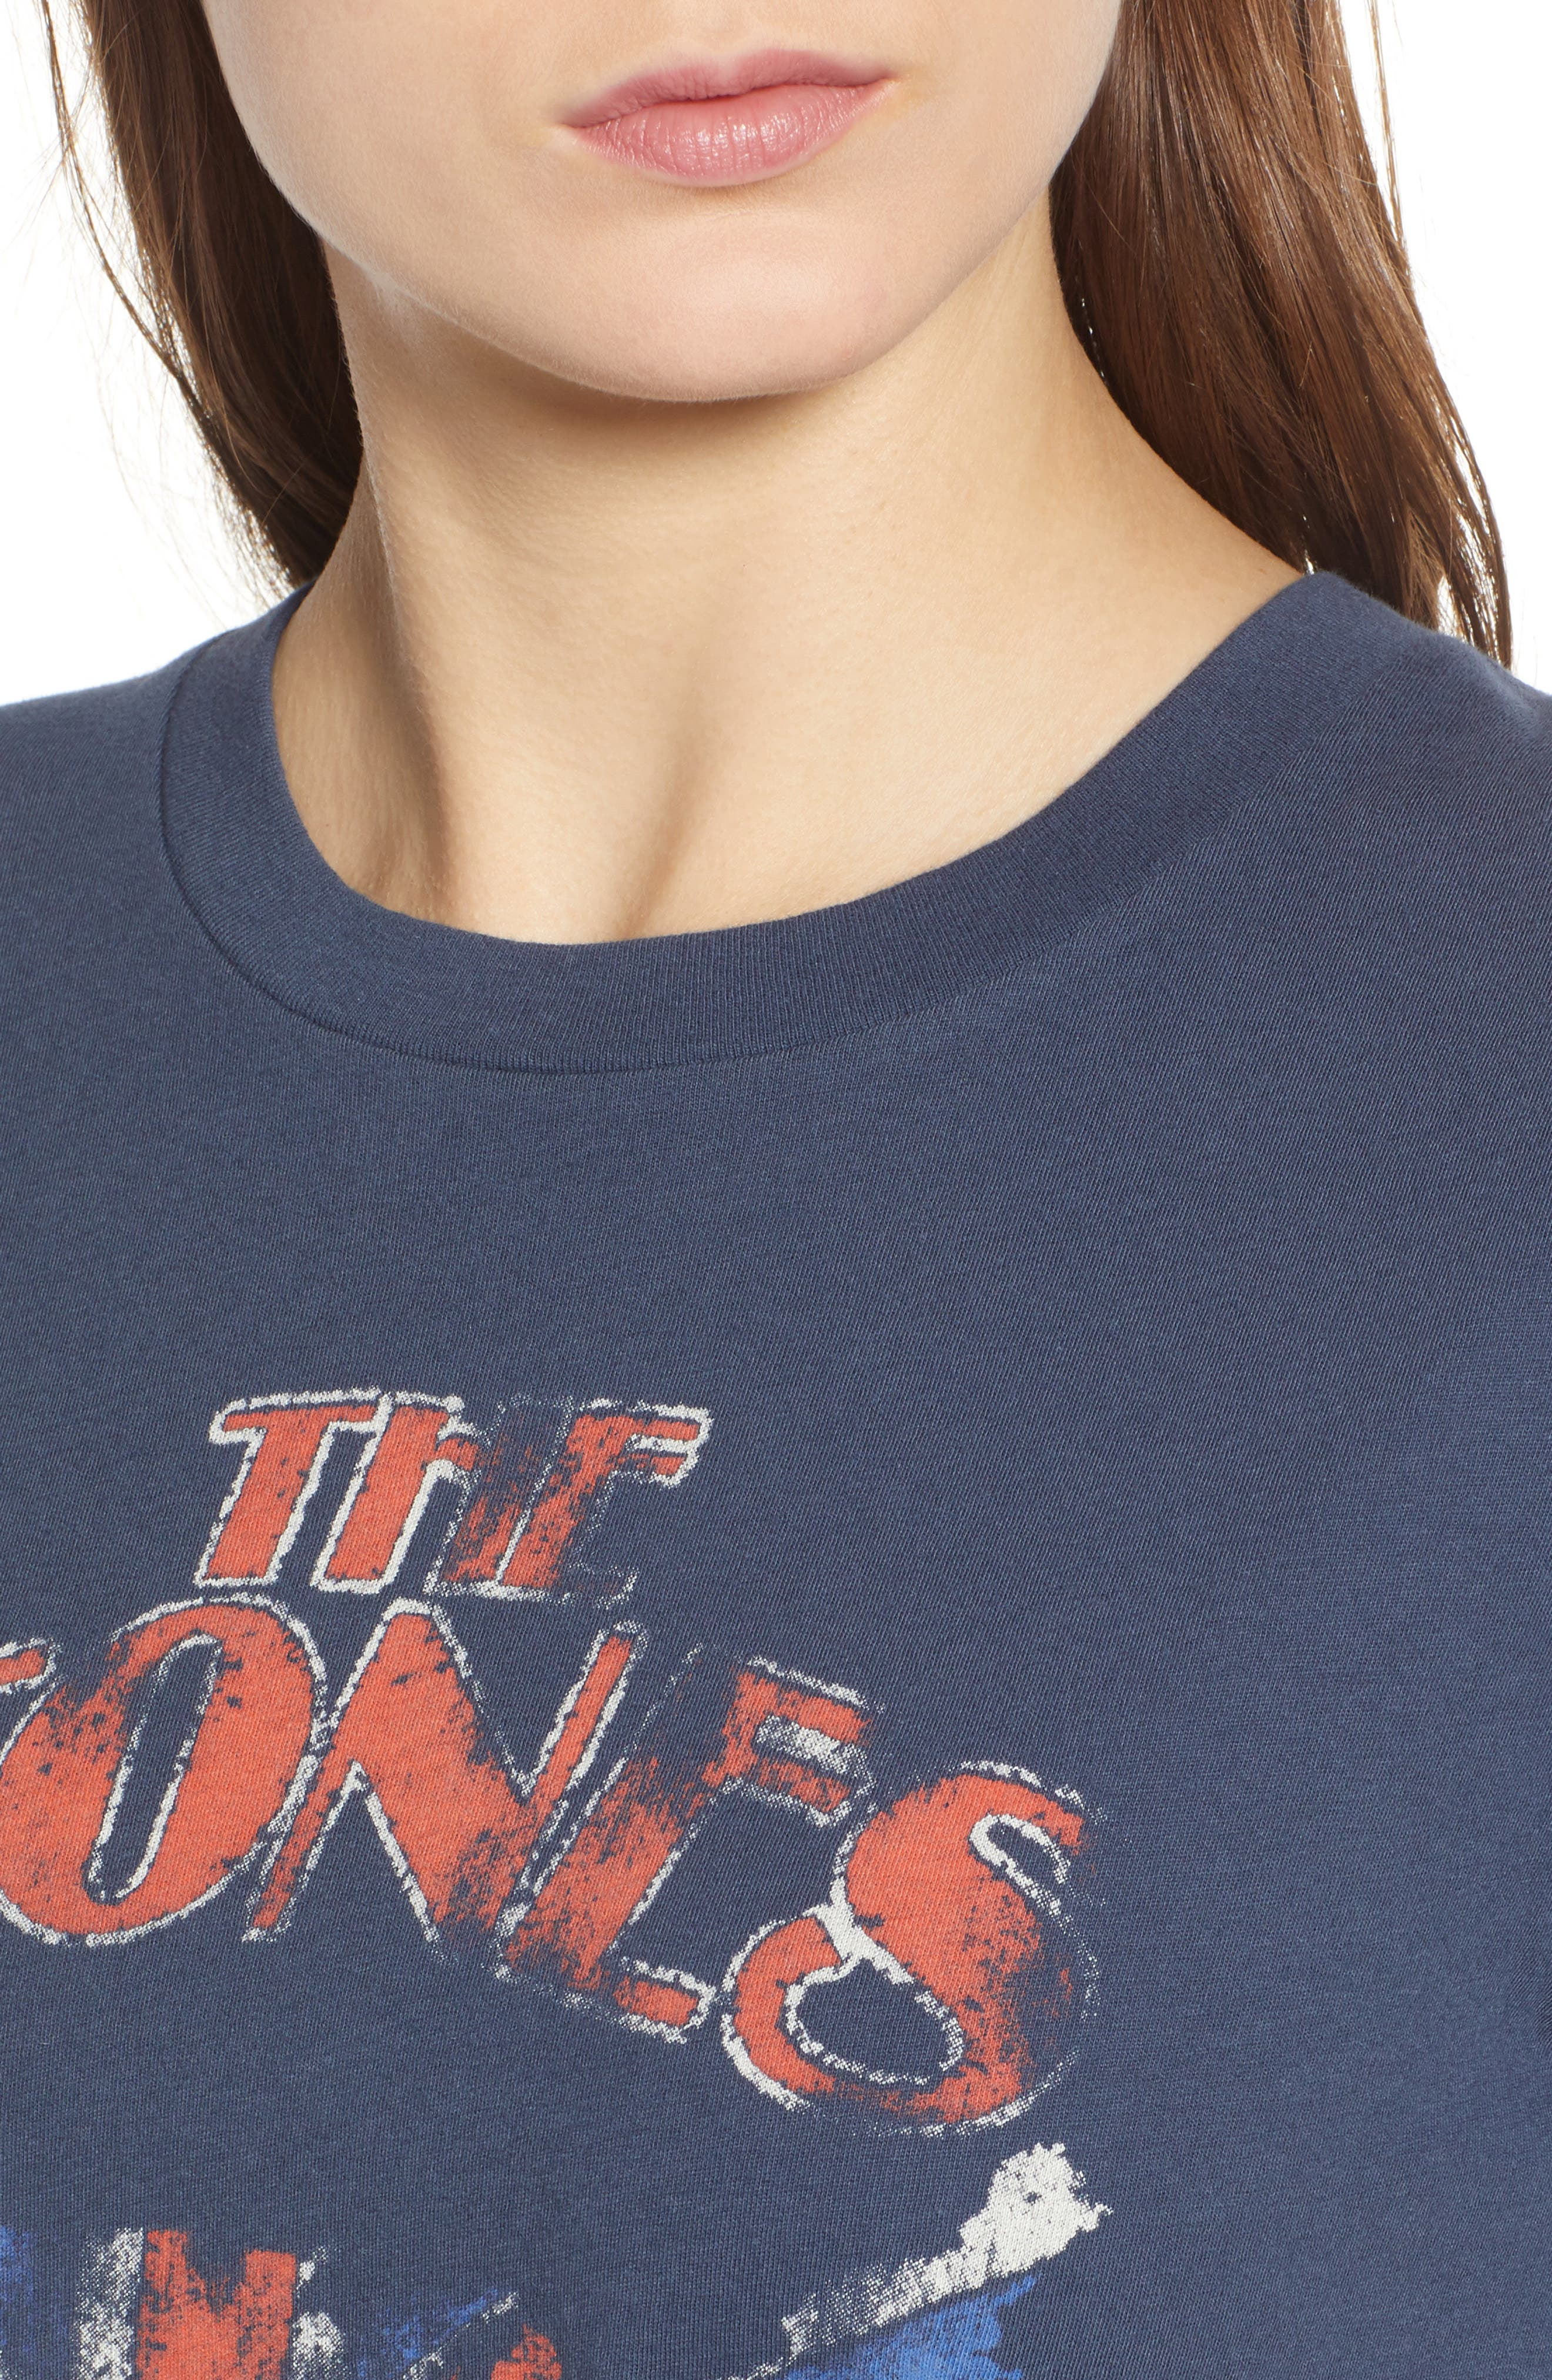 The Stones Graphic Tee,                             Alternate thumbnail 4, color,                             Navy Blue Combo